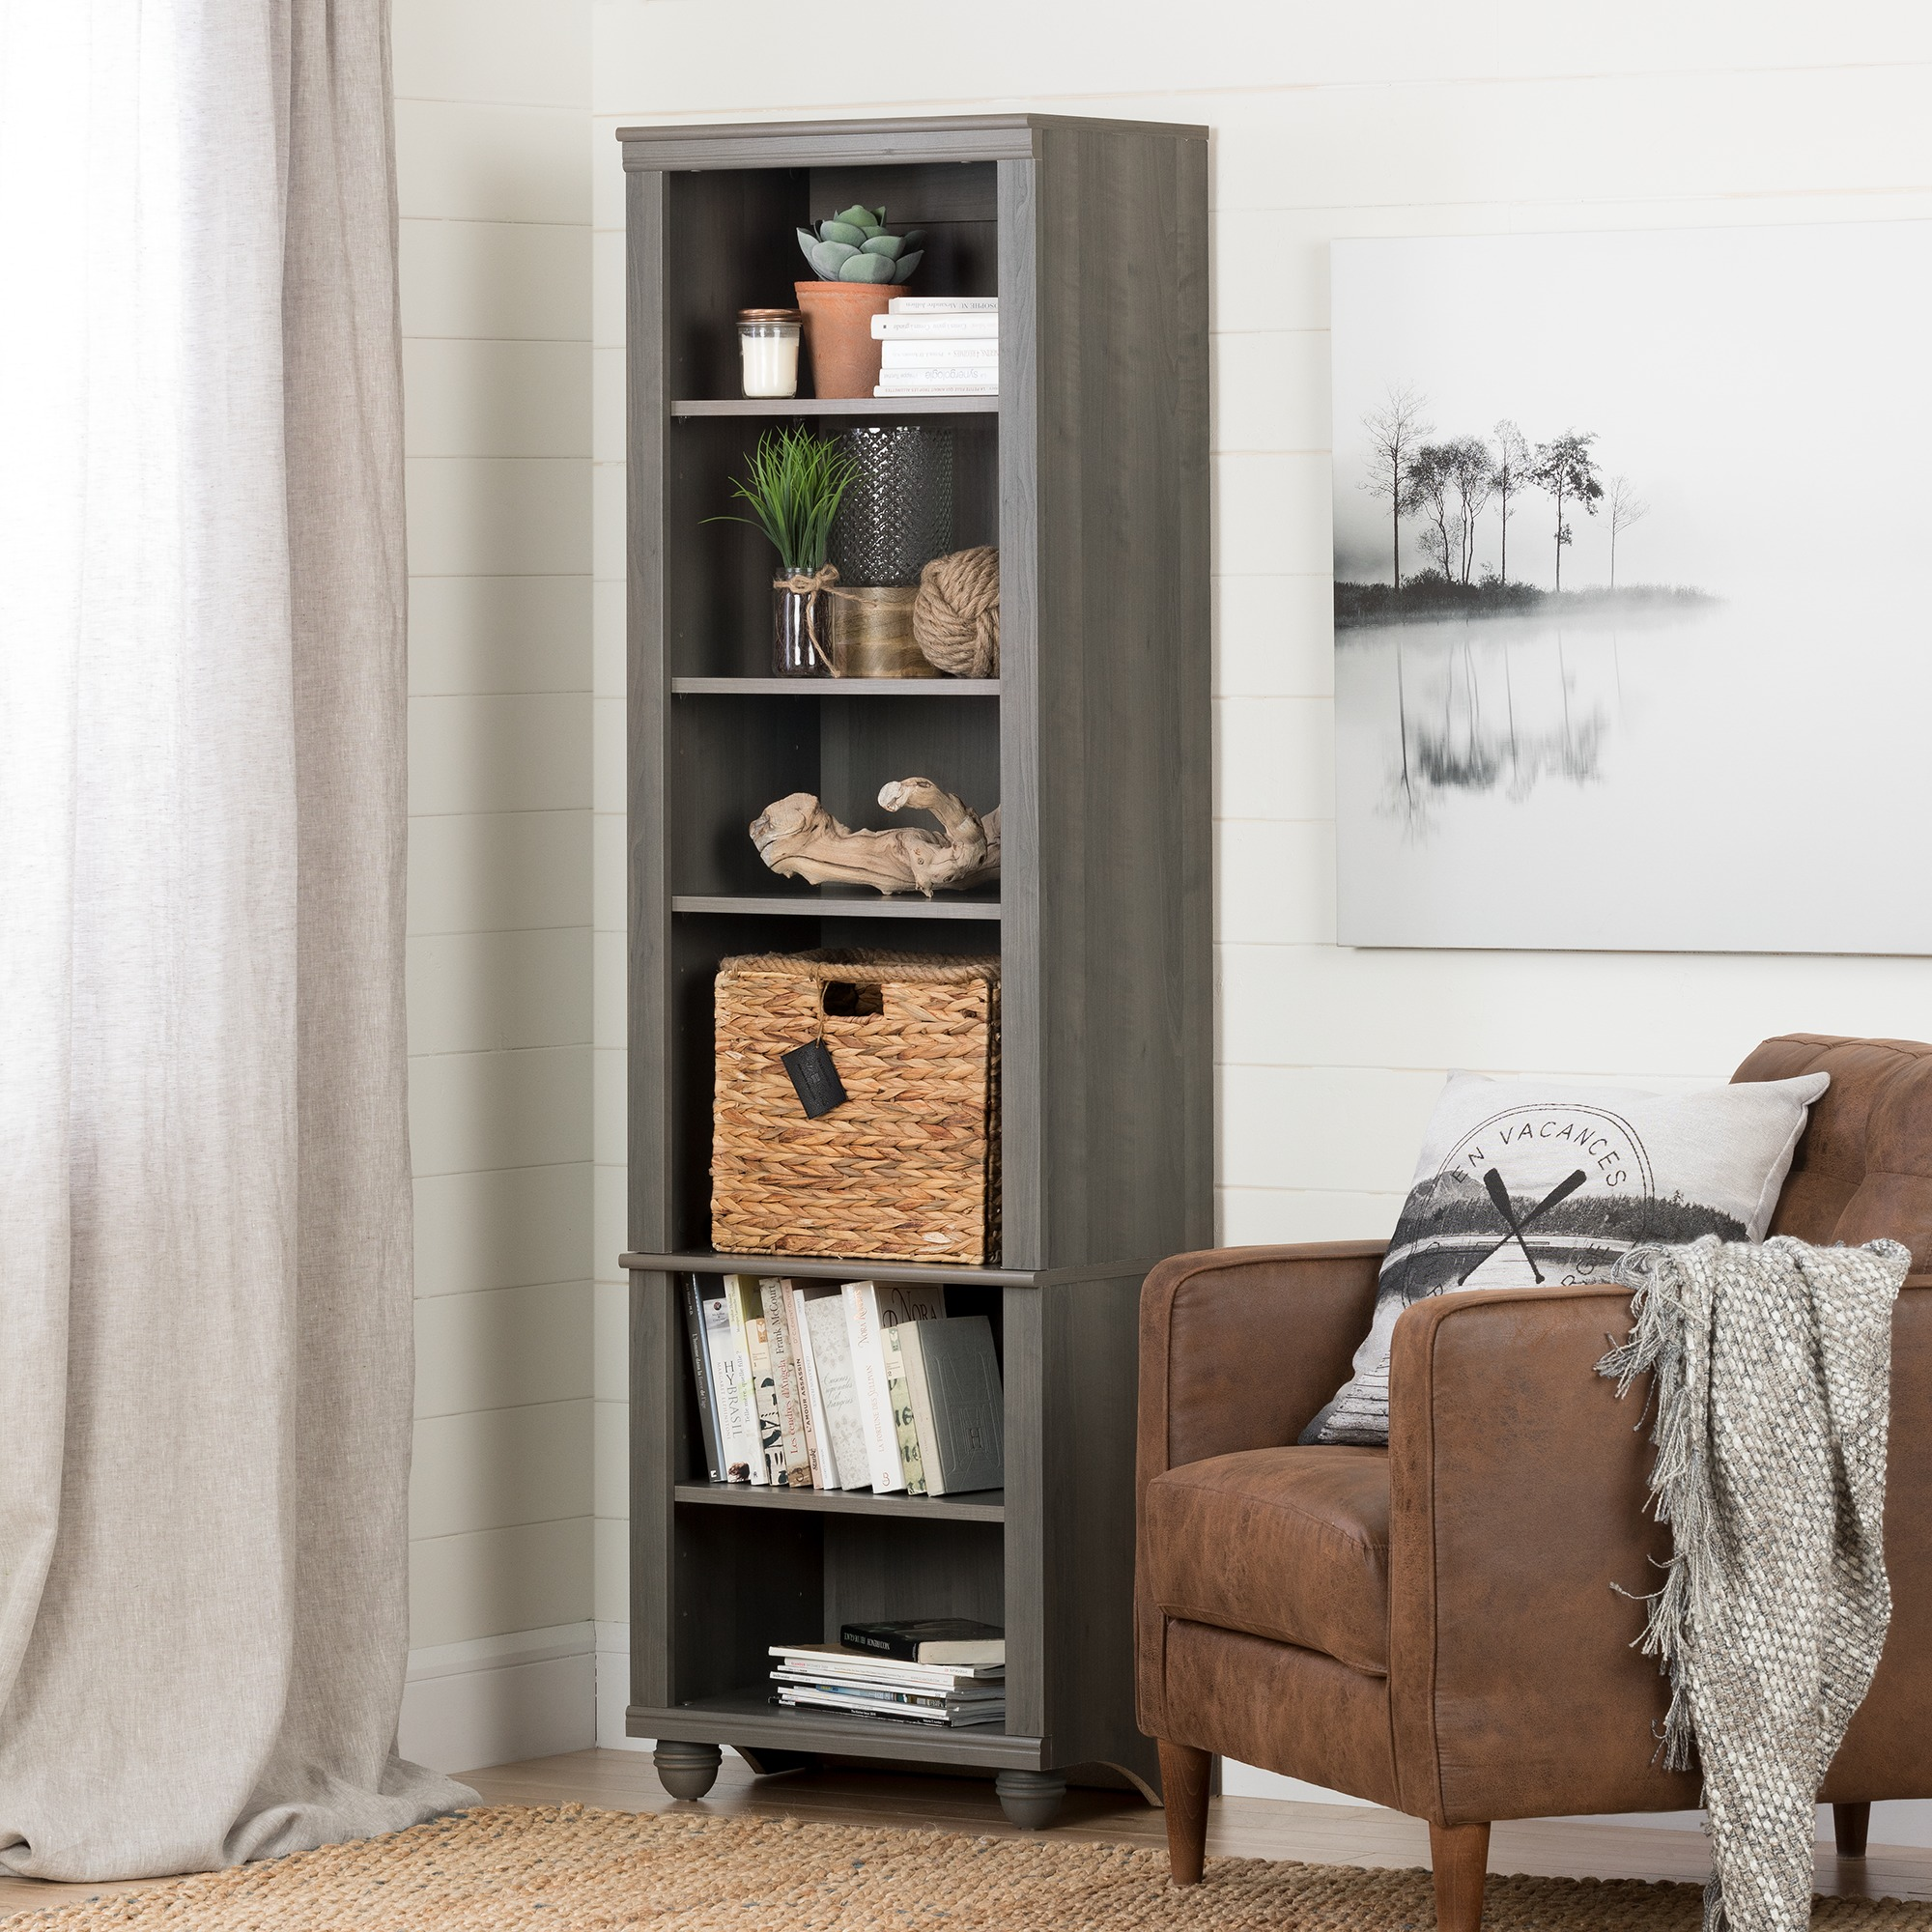 South Shore Hopedale Narrow 6-Shelf Bookcase with Rattan Basket, Multiple Finishes